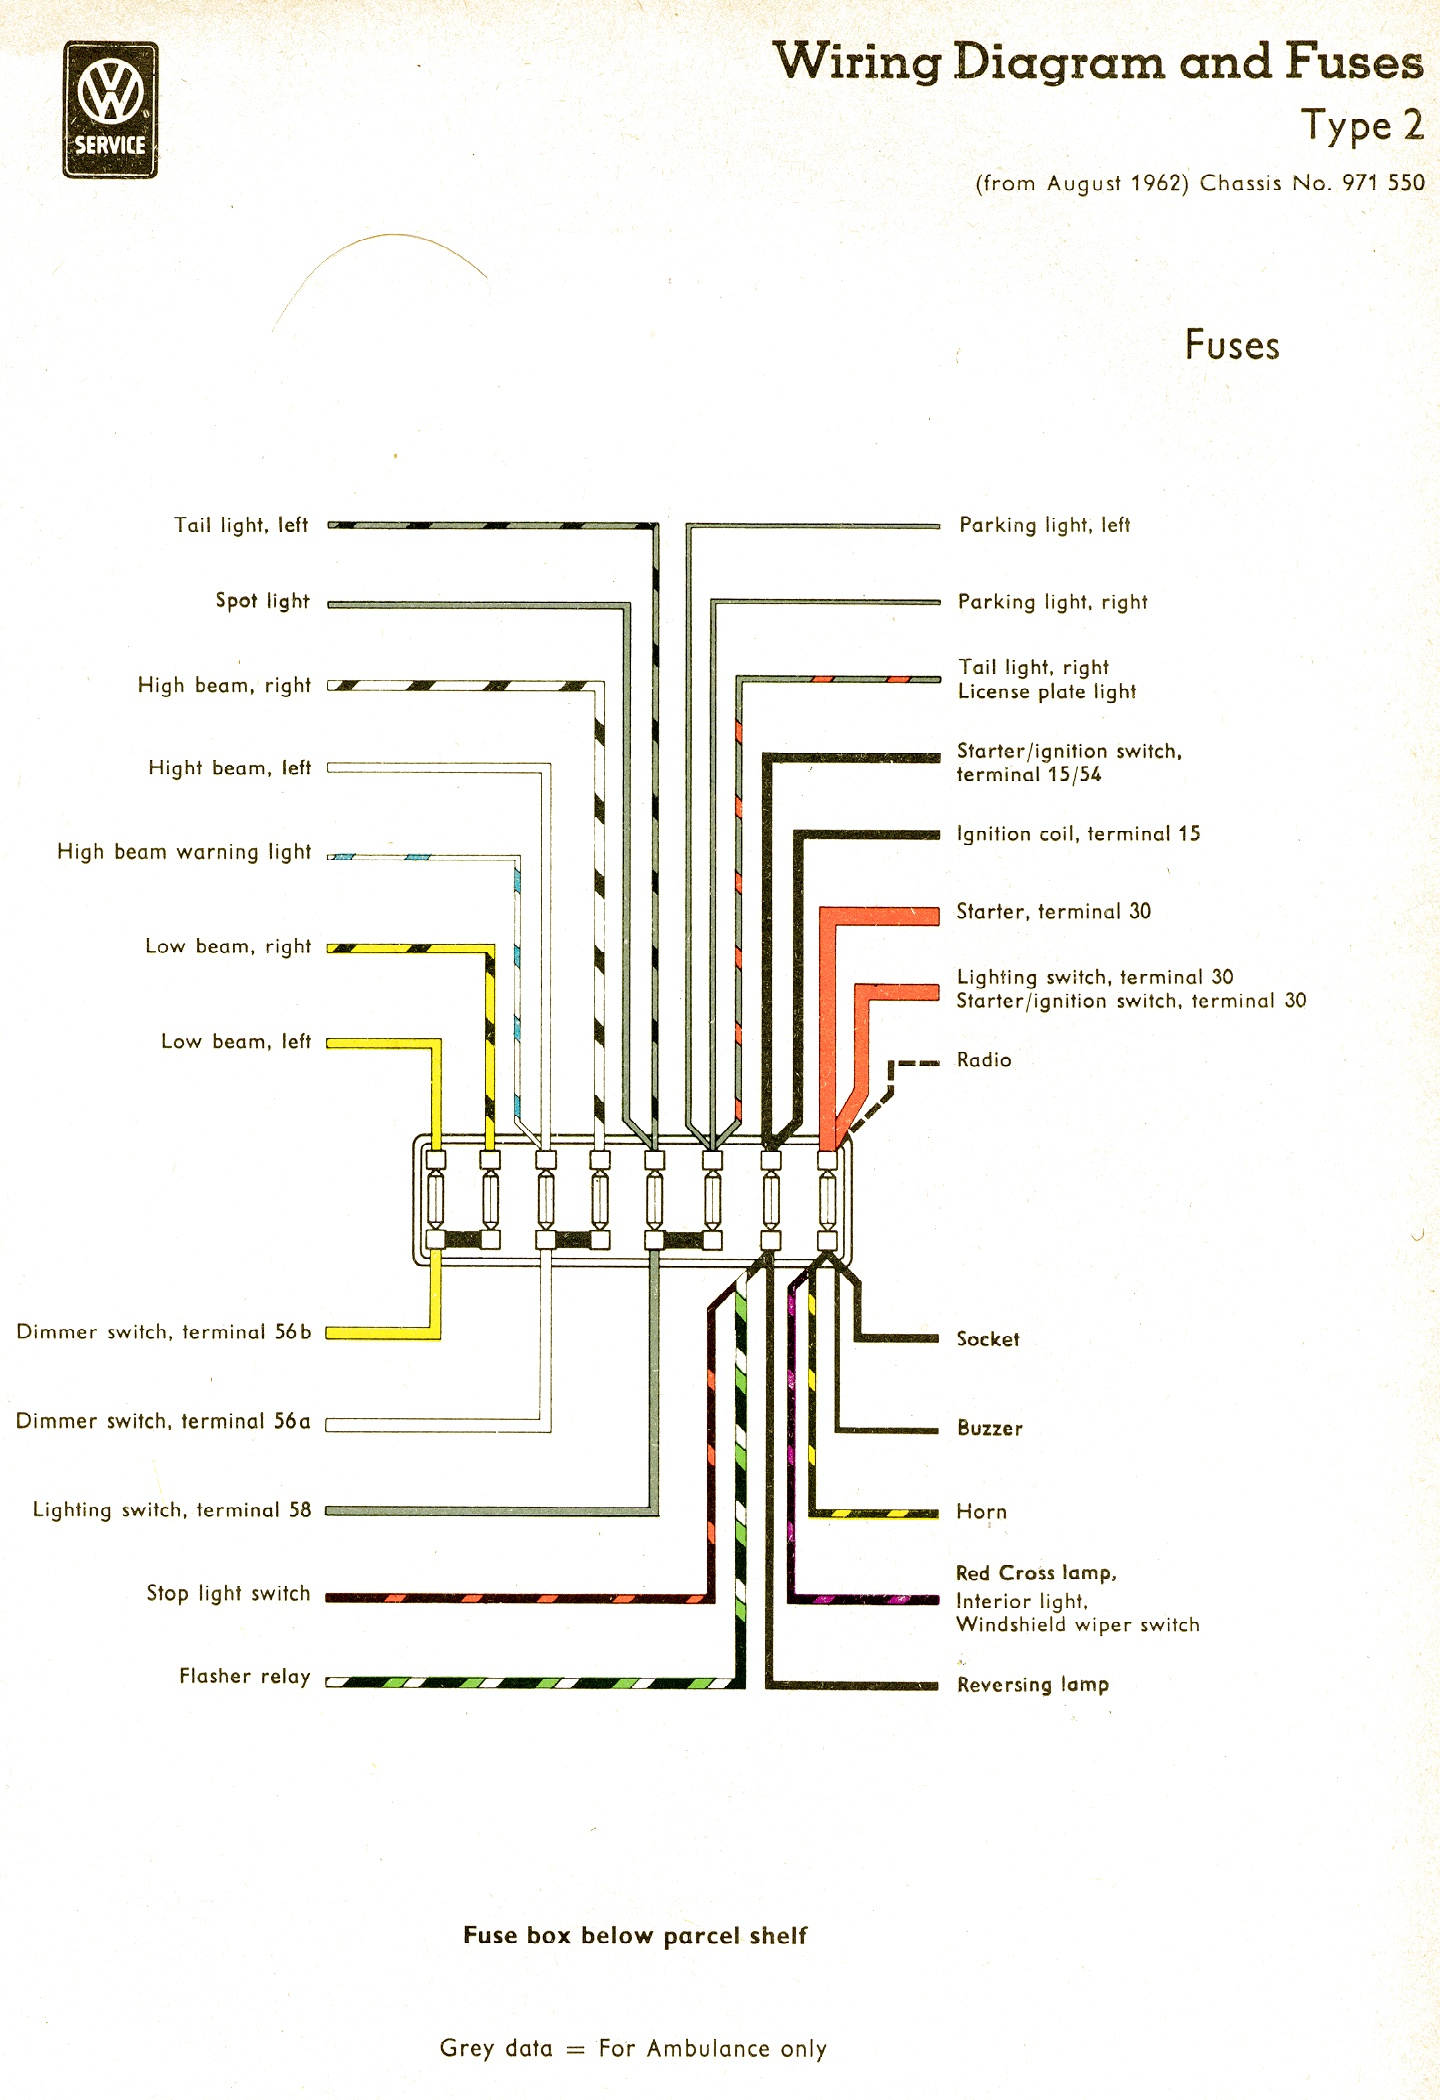 1970 vw fuse box diagram learn circuit diagram u2022 rh gadgetowl co